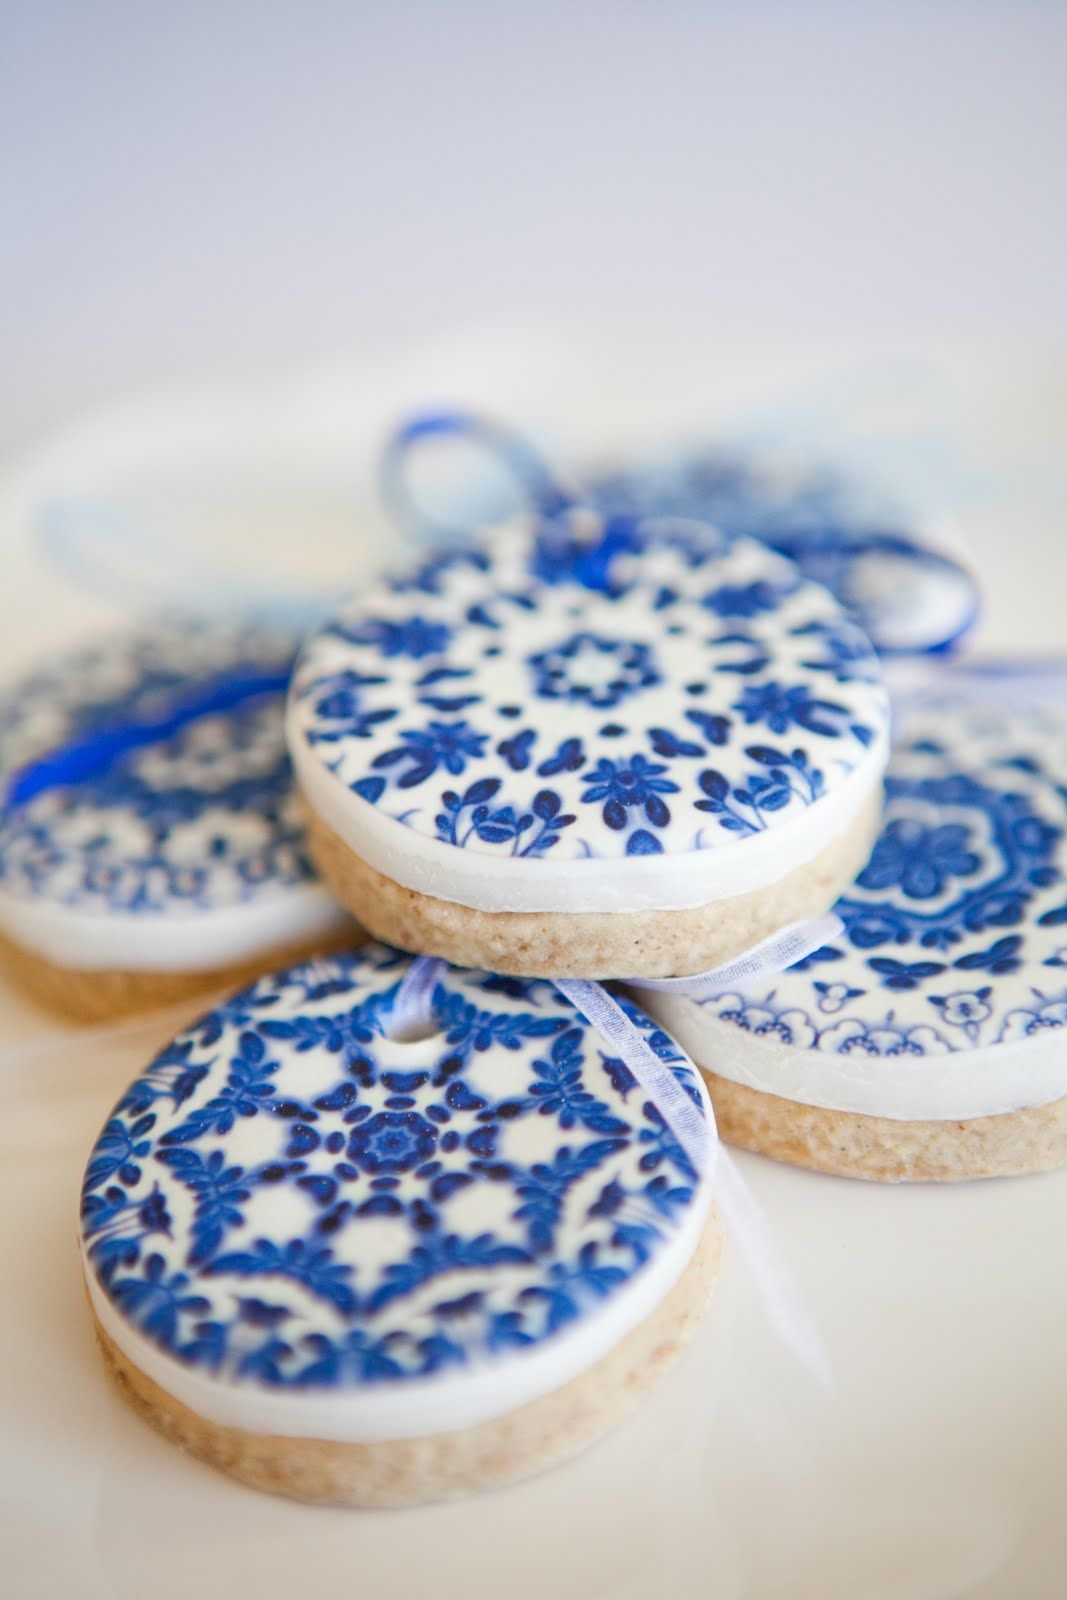 Just call me Martha: Merry Christmas - Delftware luncheon Use edible images to decorate these cookies!